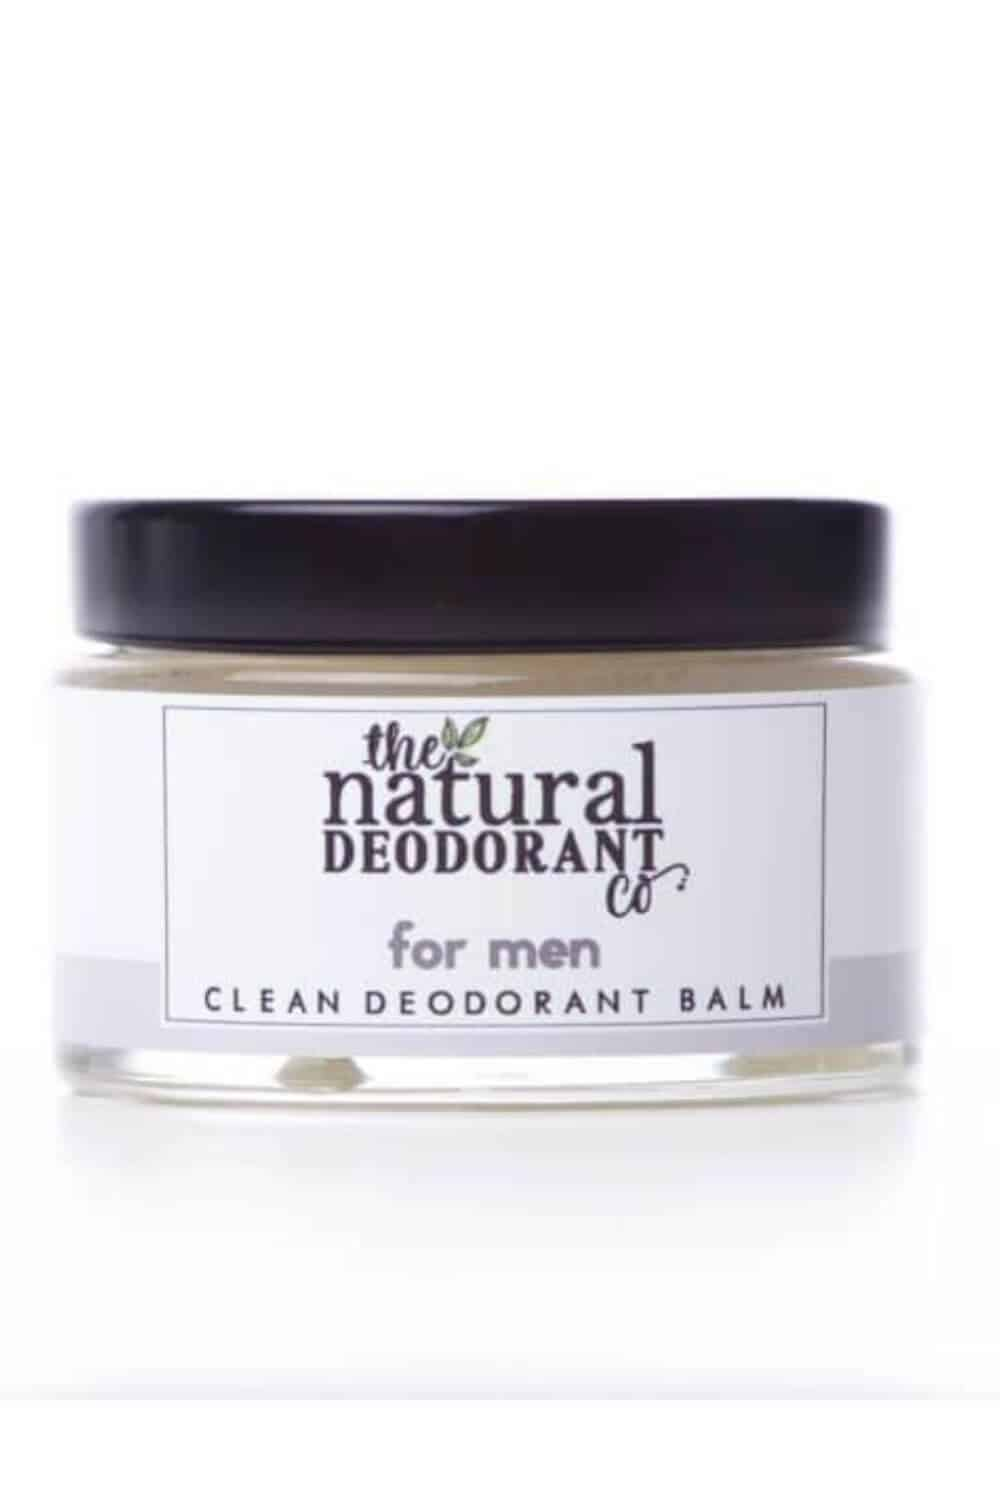 We're meant to sweat. So finding the best natural and environmentally friendly deodorant, one that really works and is actually natural is pretty important! Here's our list... Image by The Natural Deodorant Co #environmentallfriendlydeodorant #sustainablejungle